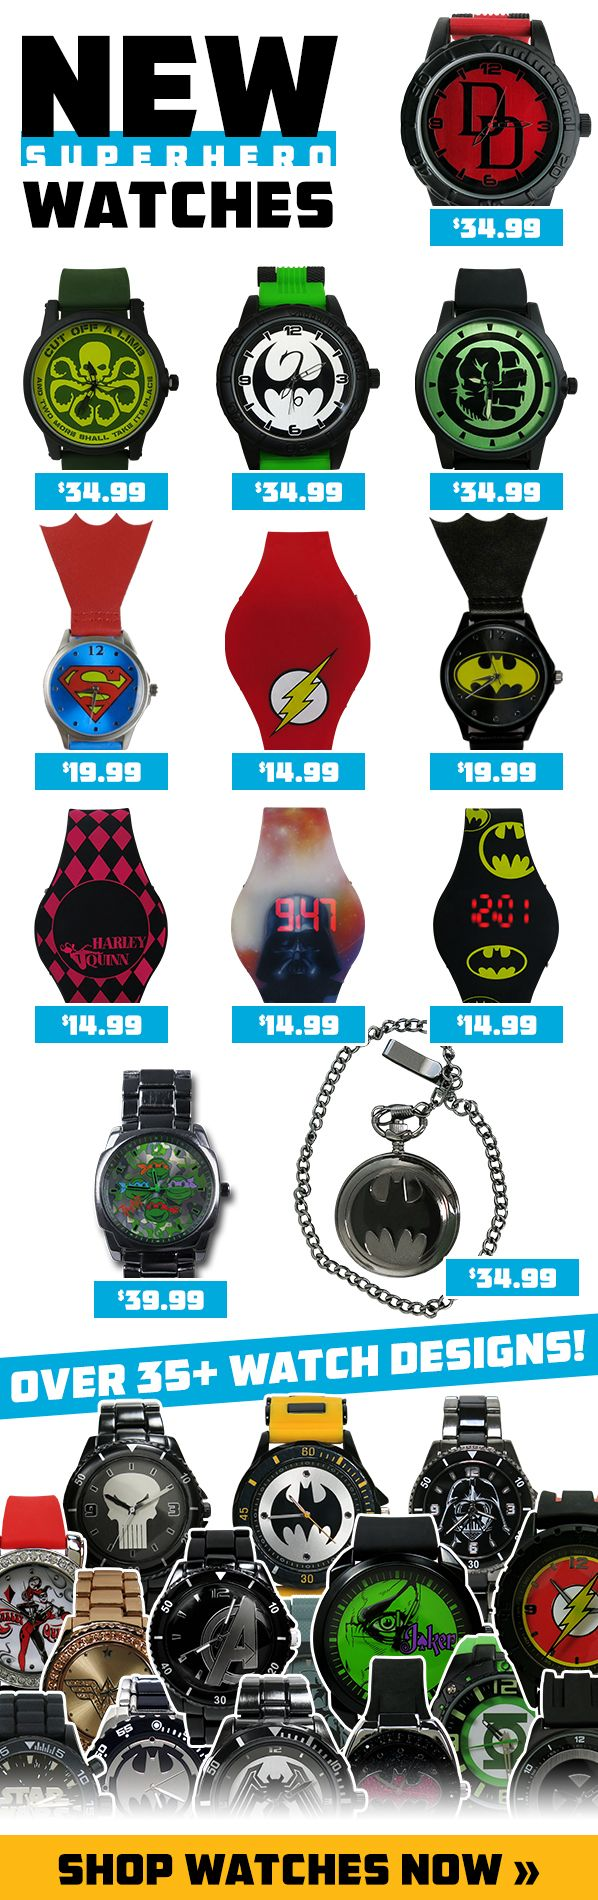 NEW STUFF: Keep track of the time like a hero, a Superhero, with one of these watches! Just make sure to take it off before you start serving justice, you wouldn't want to break it: http://www.superherostuff.com/superhero-watches.html?sortby=new